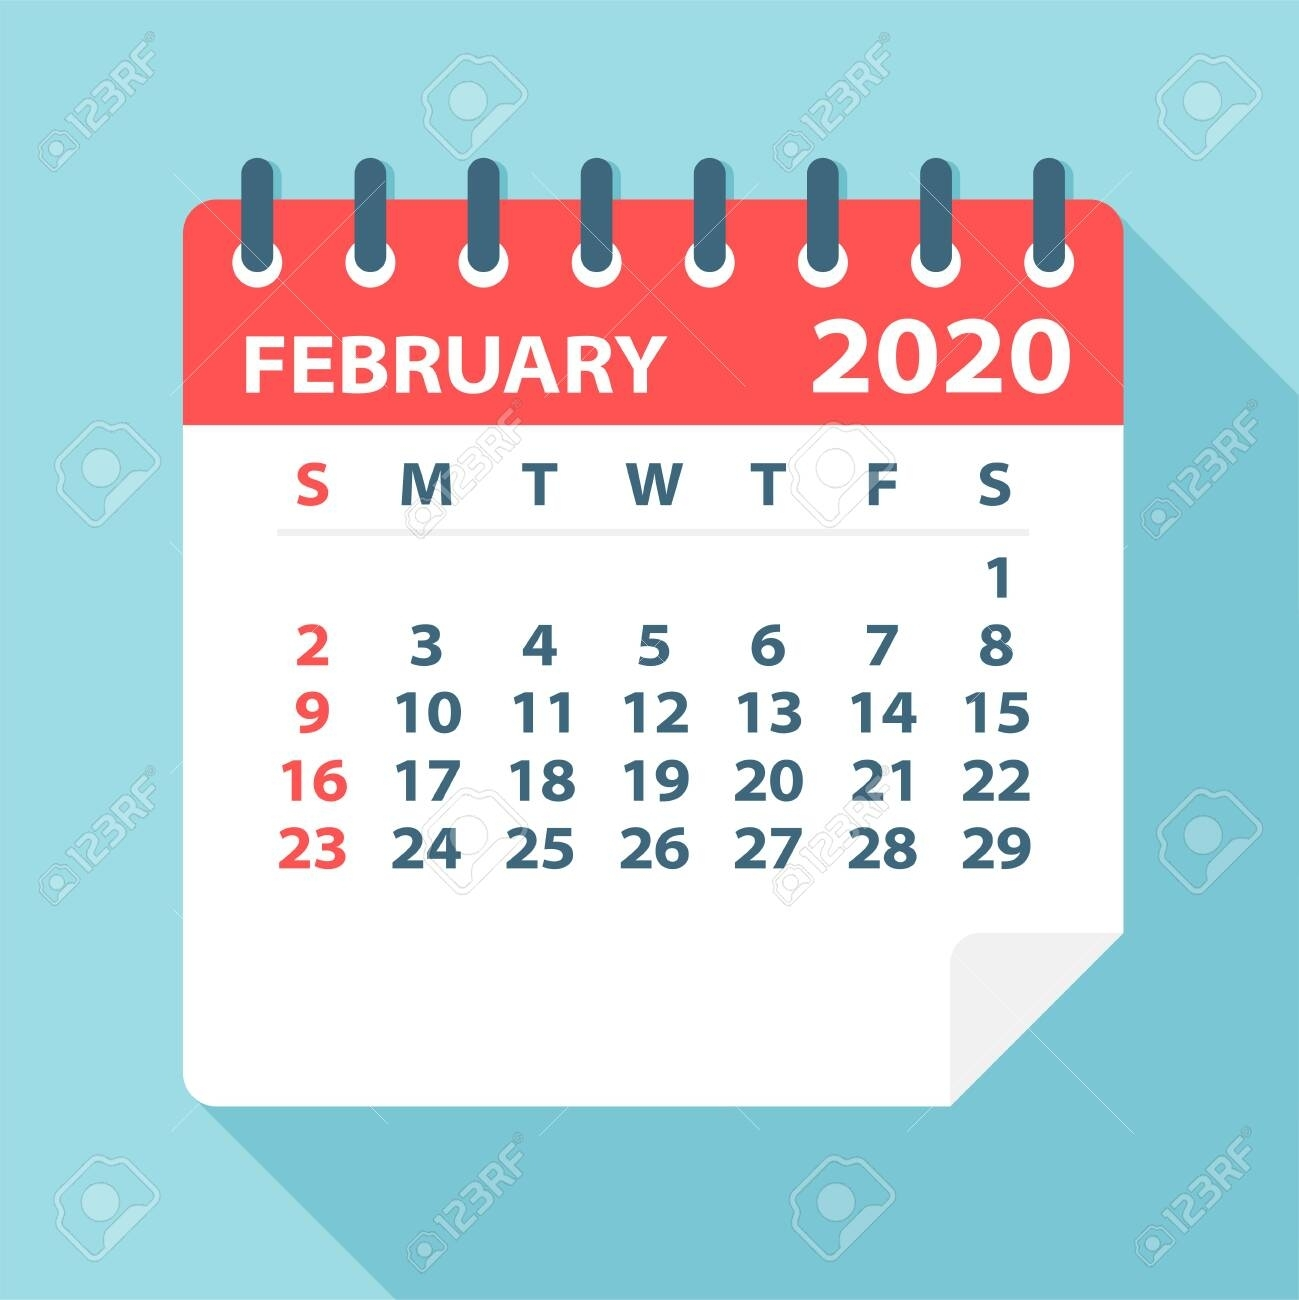 February 2020 Calendar Leaf - Illustration. Vector Graphic Page